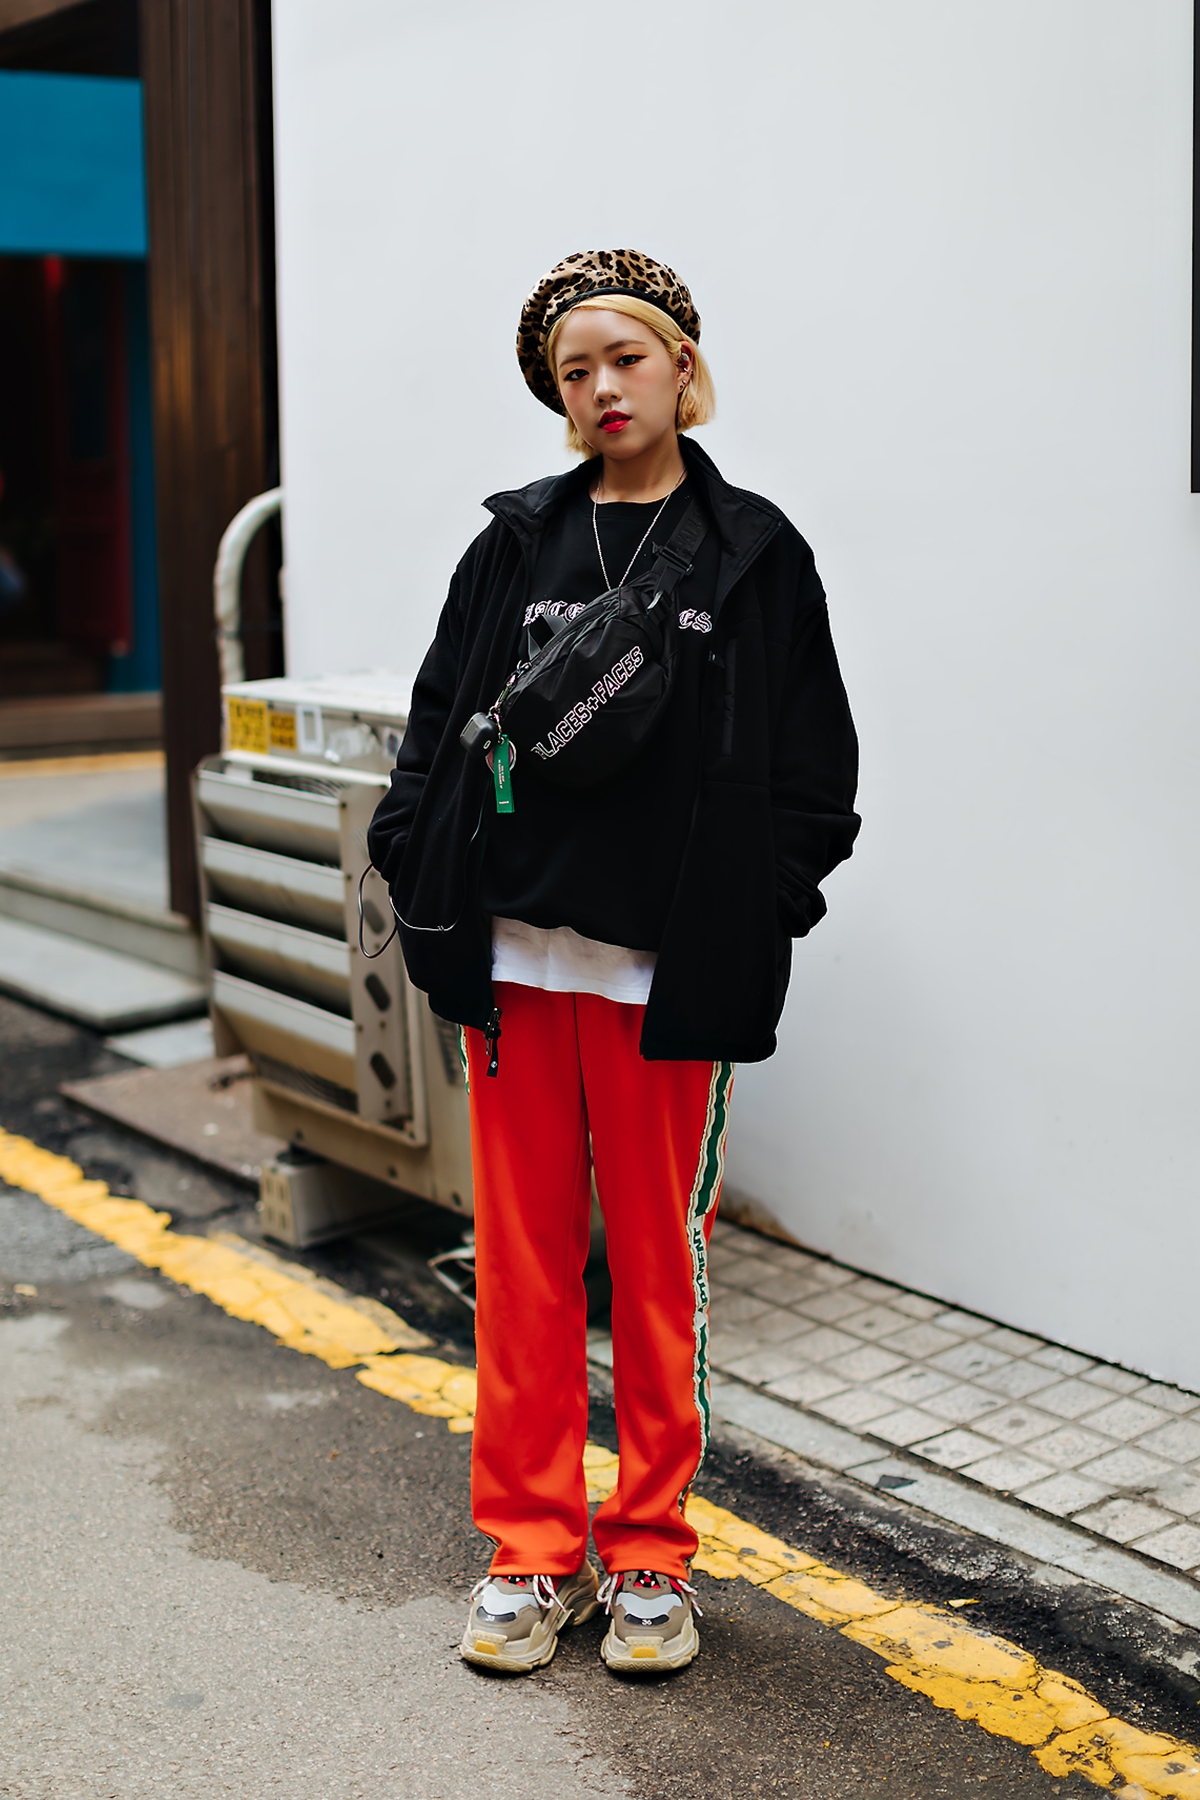 Women fall street style fourth week of october 2018 in seoul 10